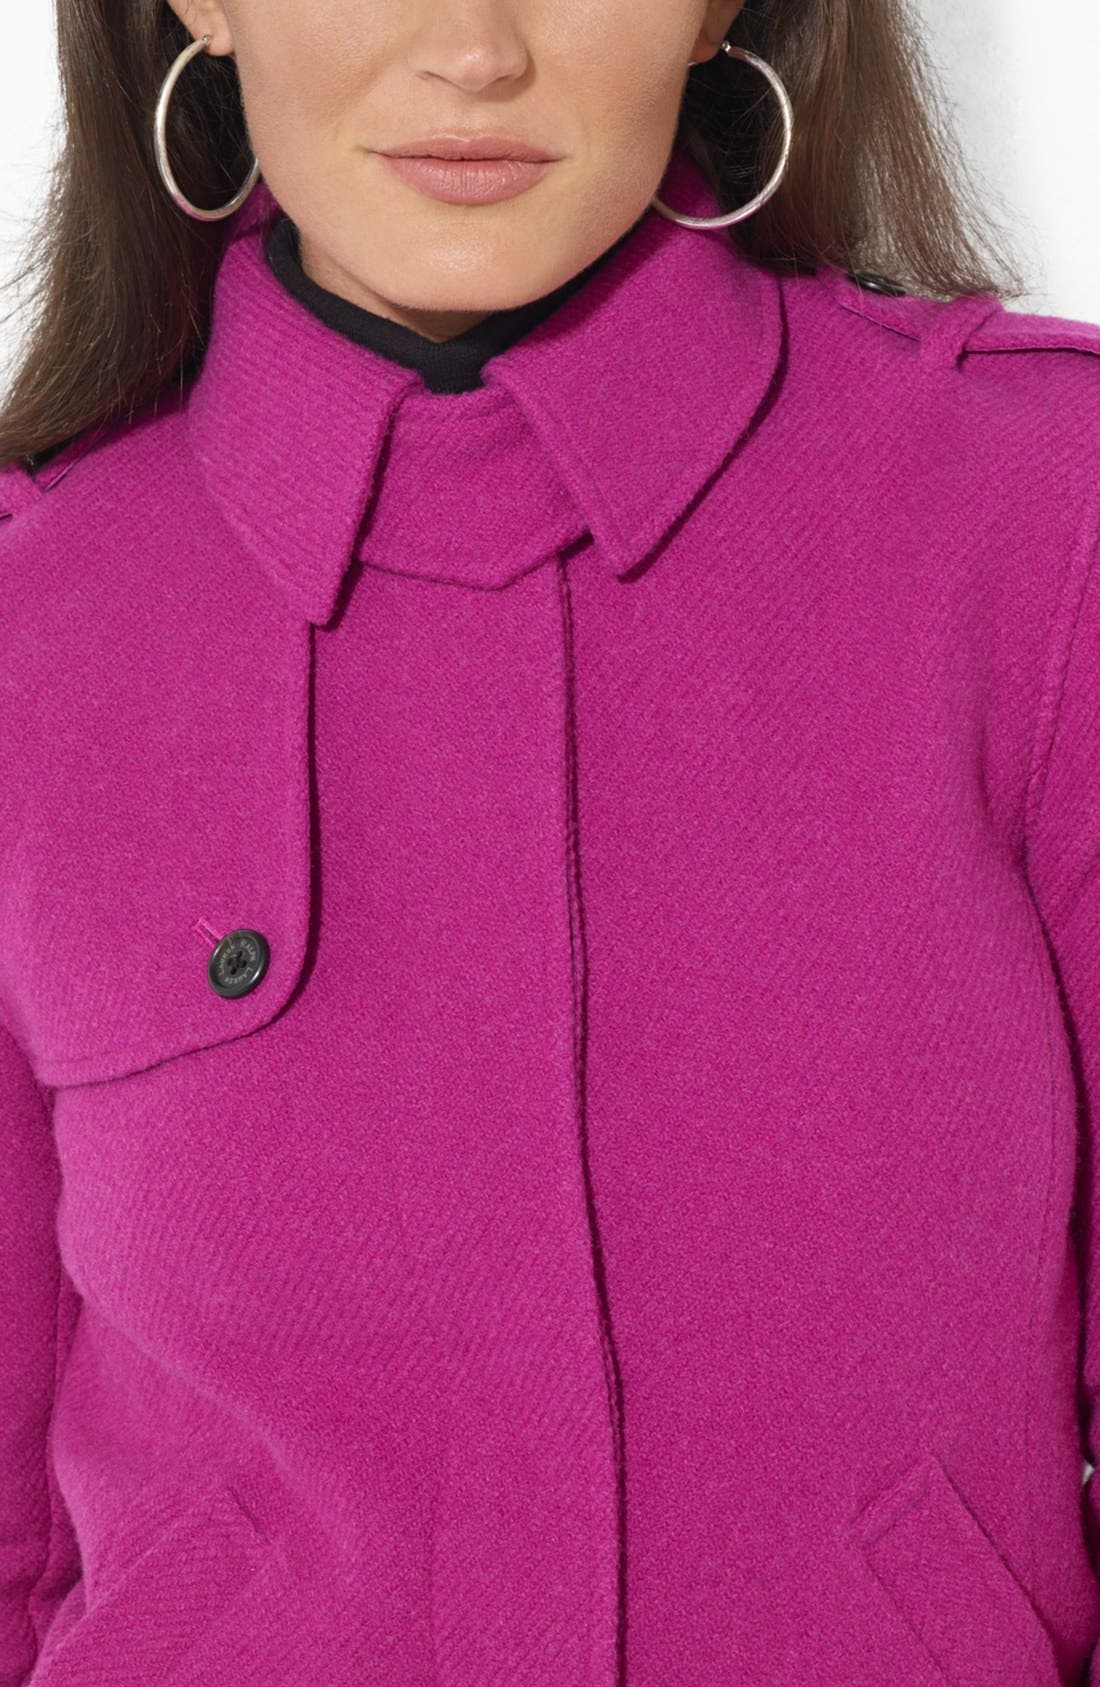 Alternate Image 3  - Lauren Ralph Lauren Buttoned Wool Blend Jacket